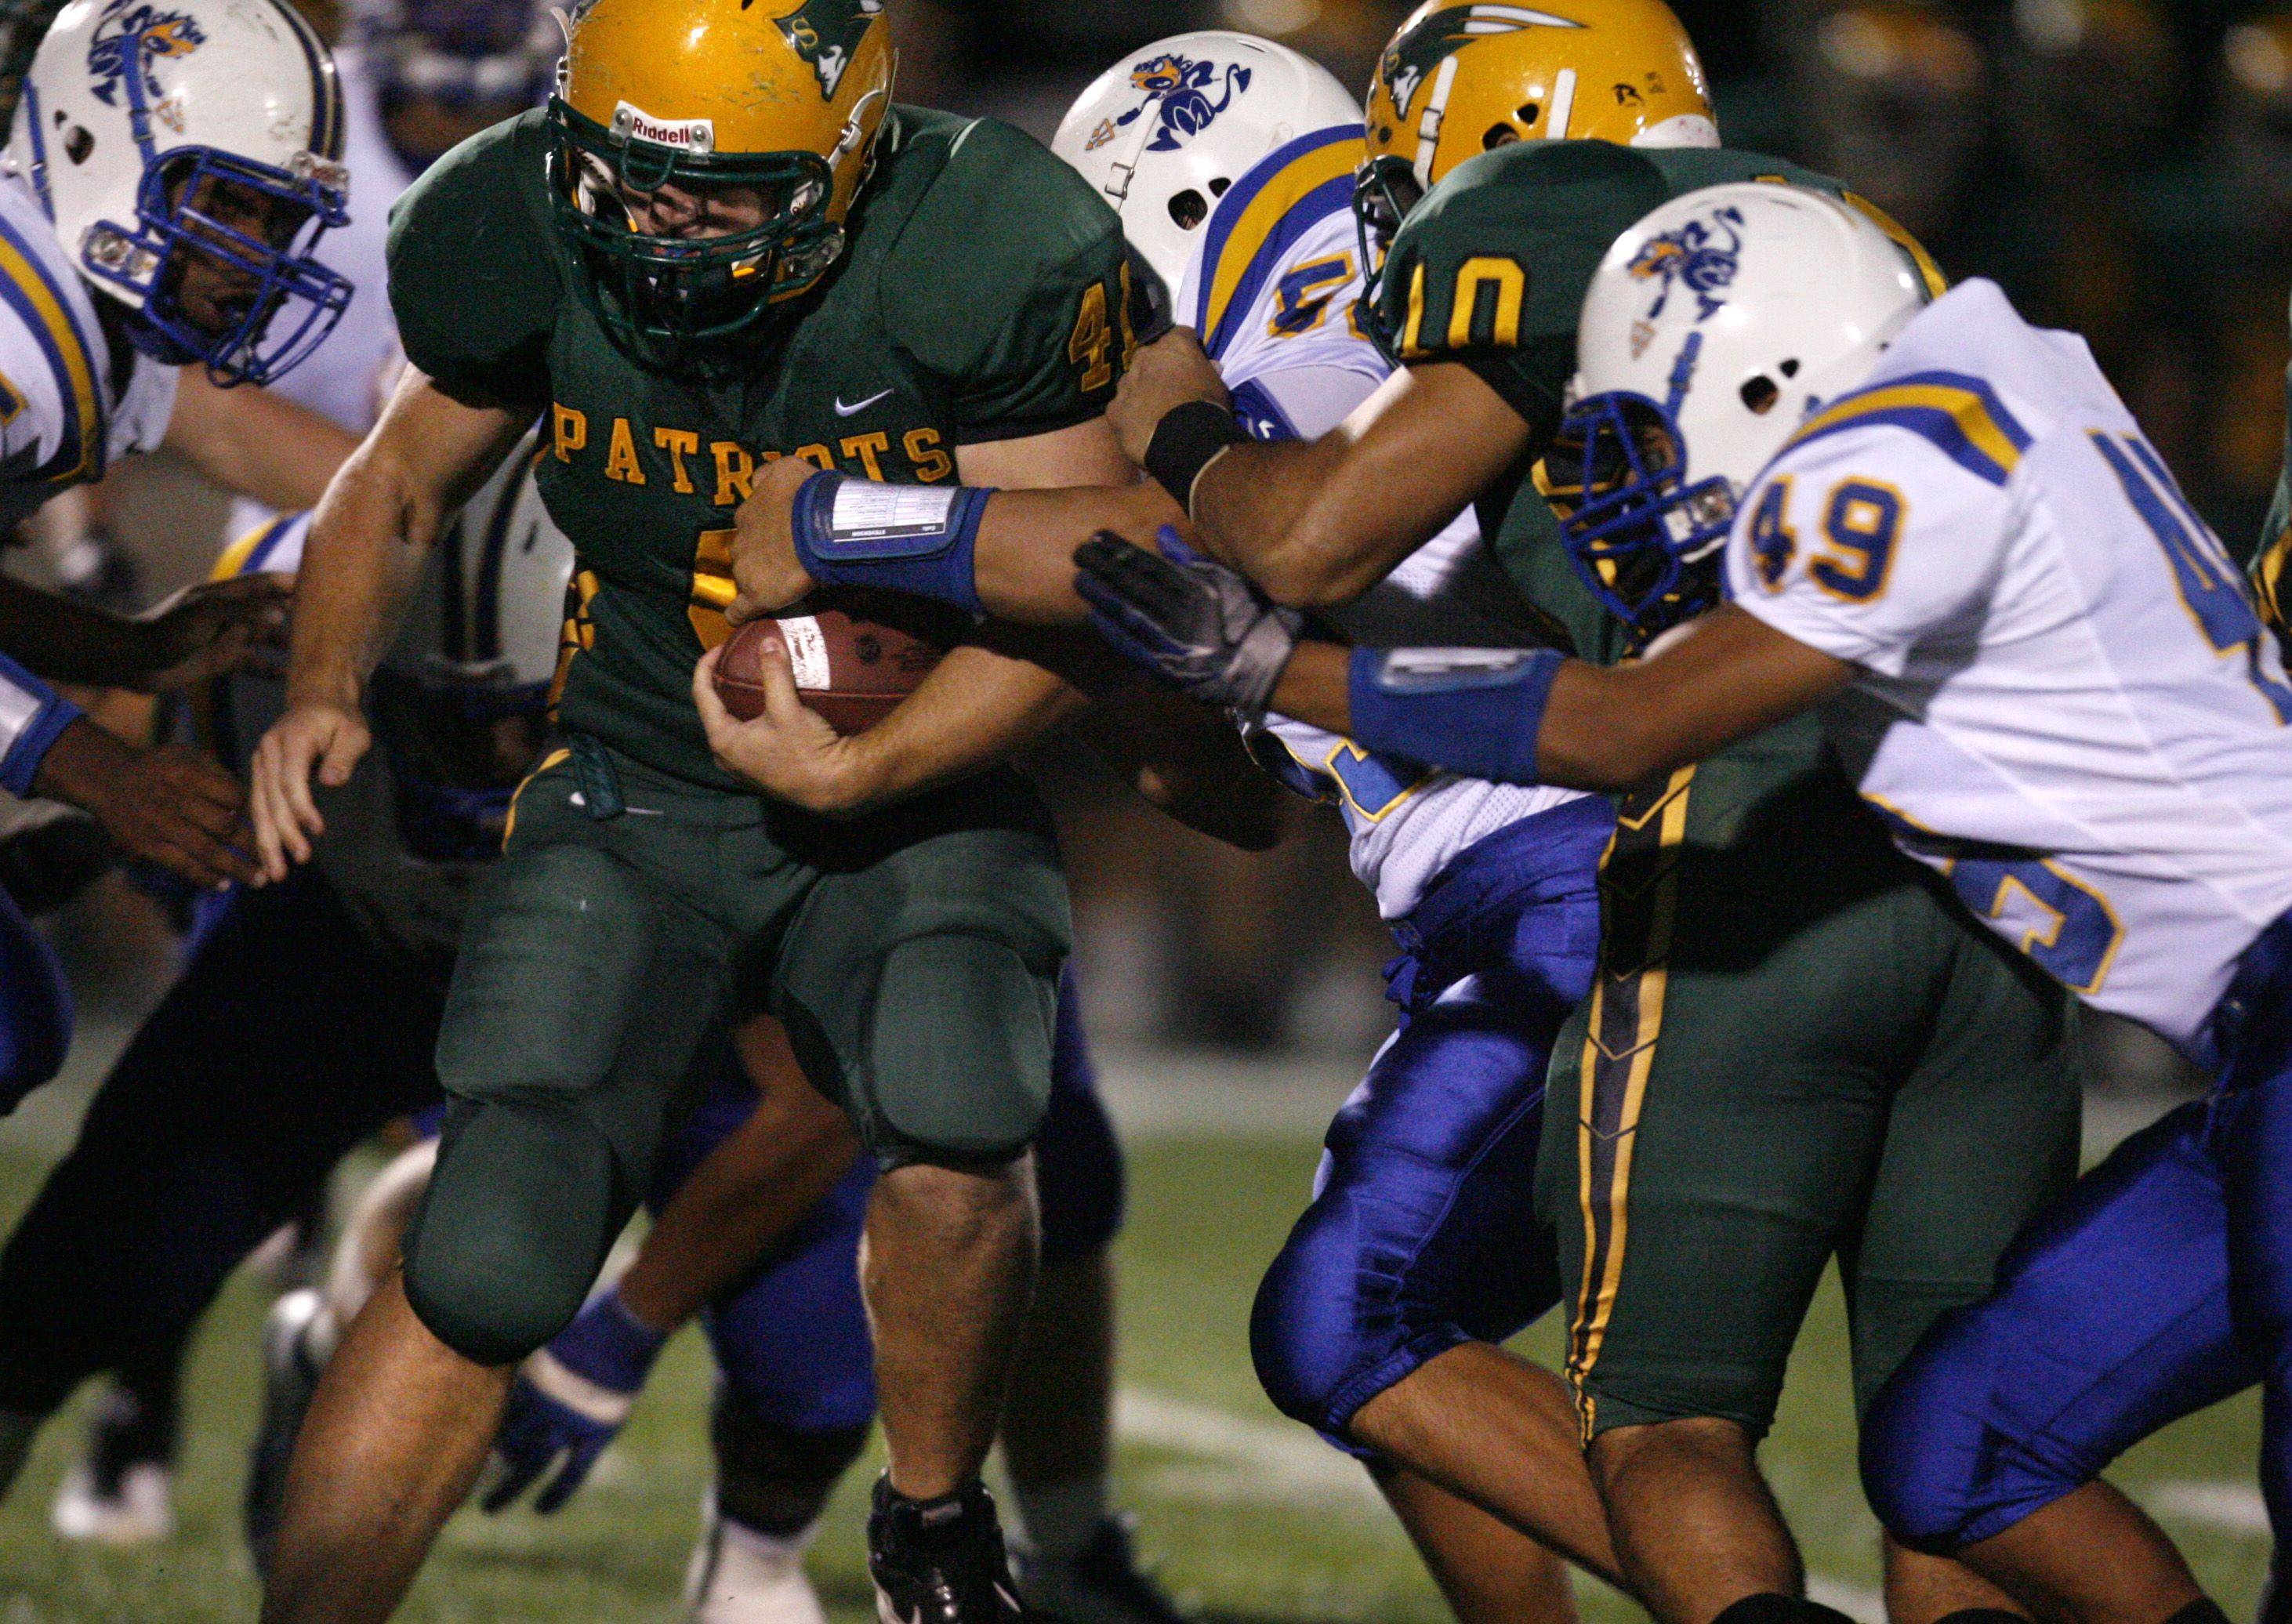 Expect to see more of Stevenson senior Nate Kahn in the thick of things this fall.